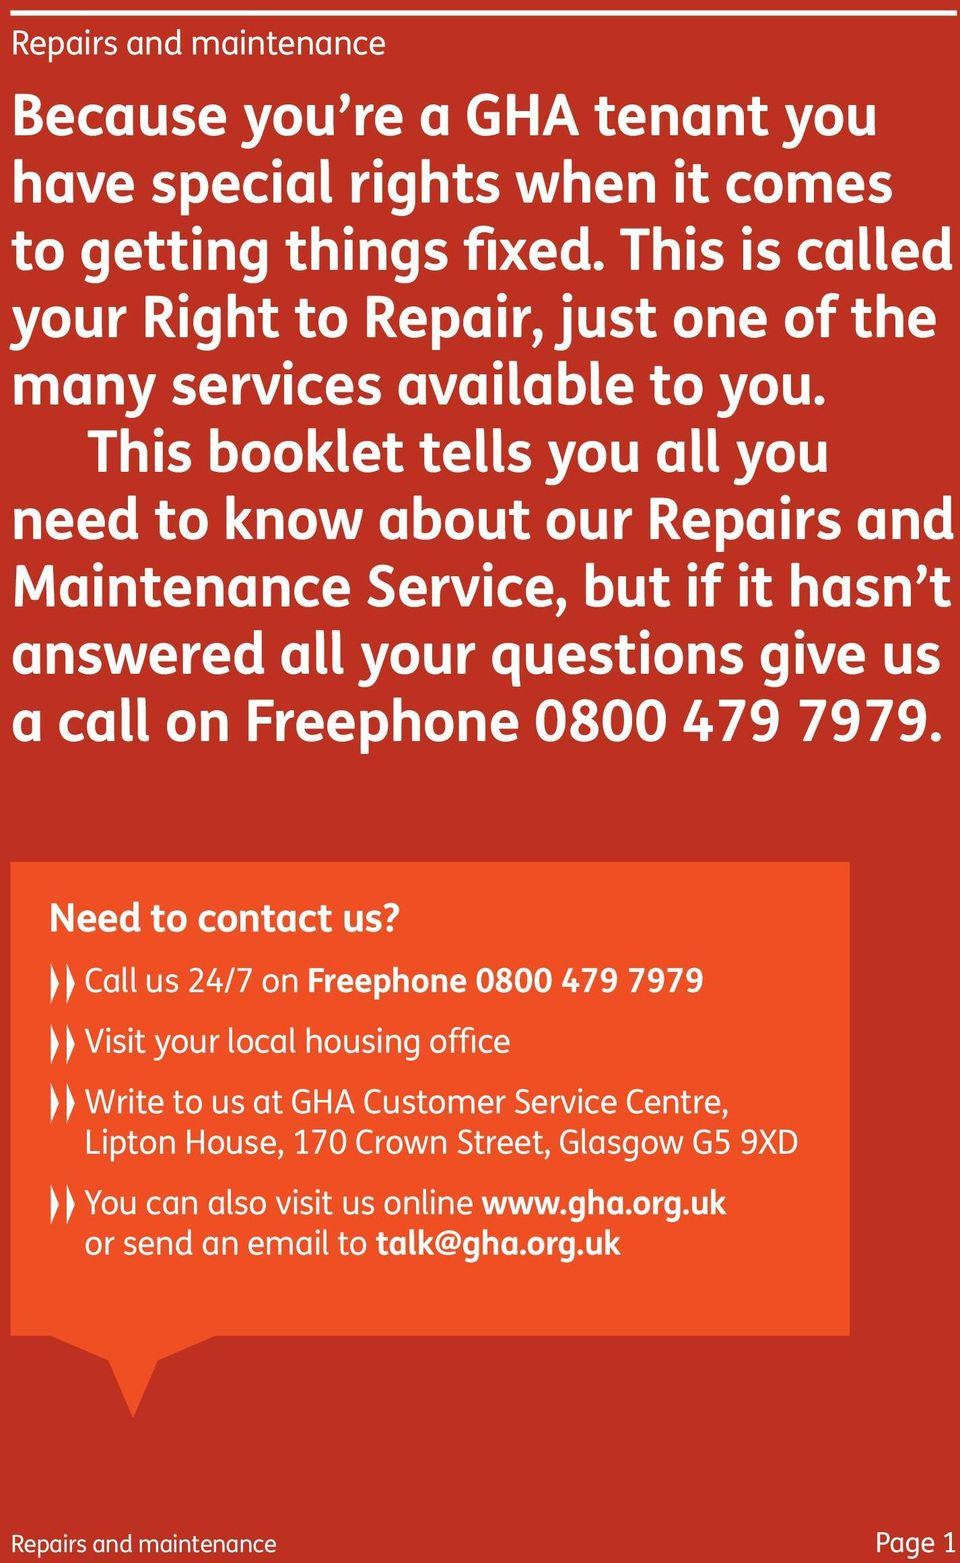 This booklet tells you all you need to know about our Repairs and Maintenance Service, but if it hasn t answered all your questions give us a call on Freephone 0800